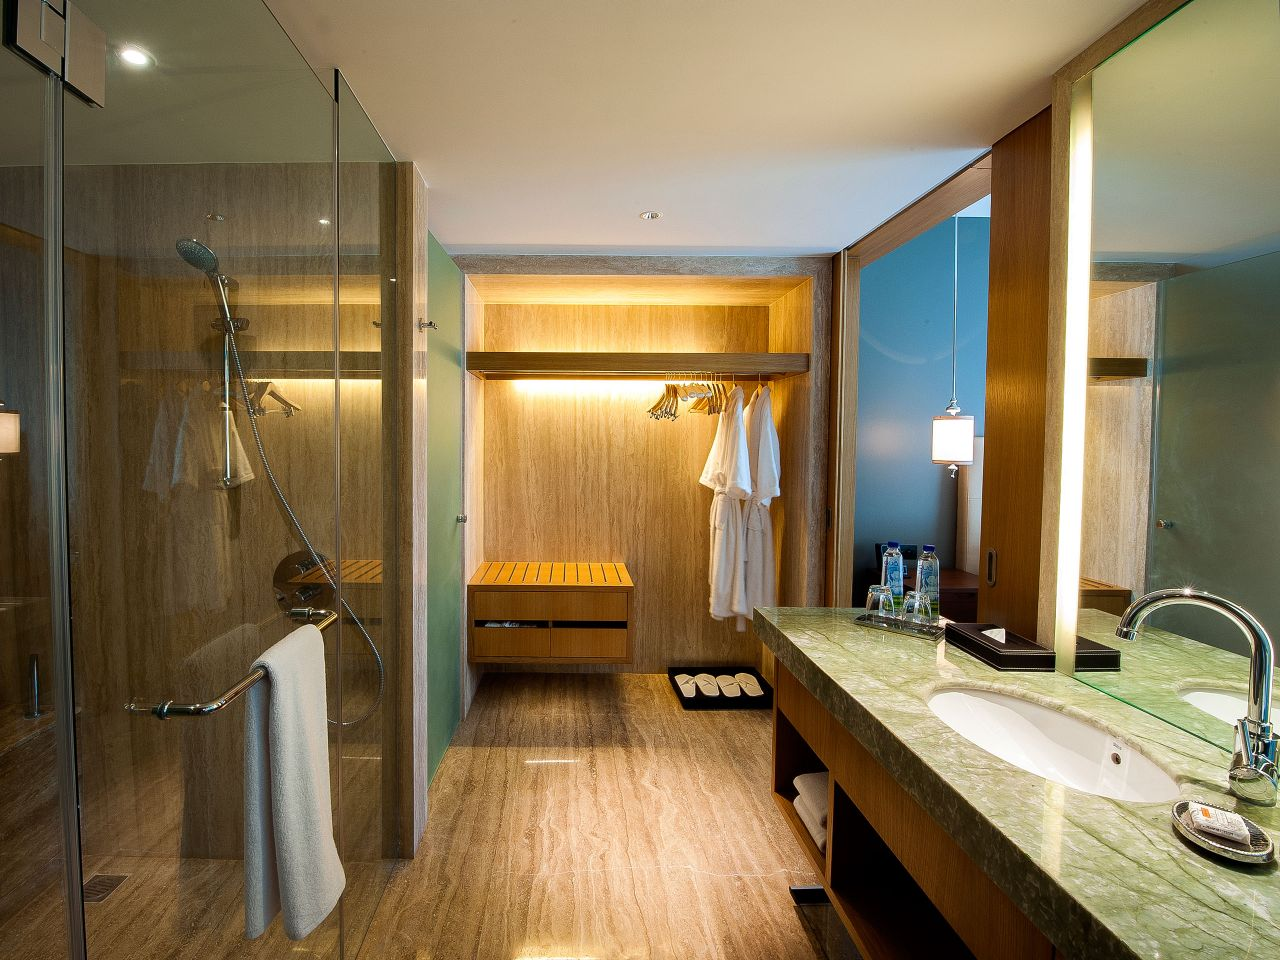 Park Room Bathroom